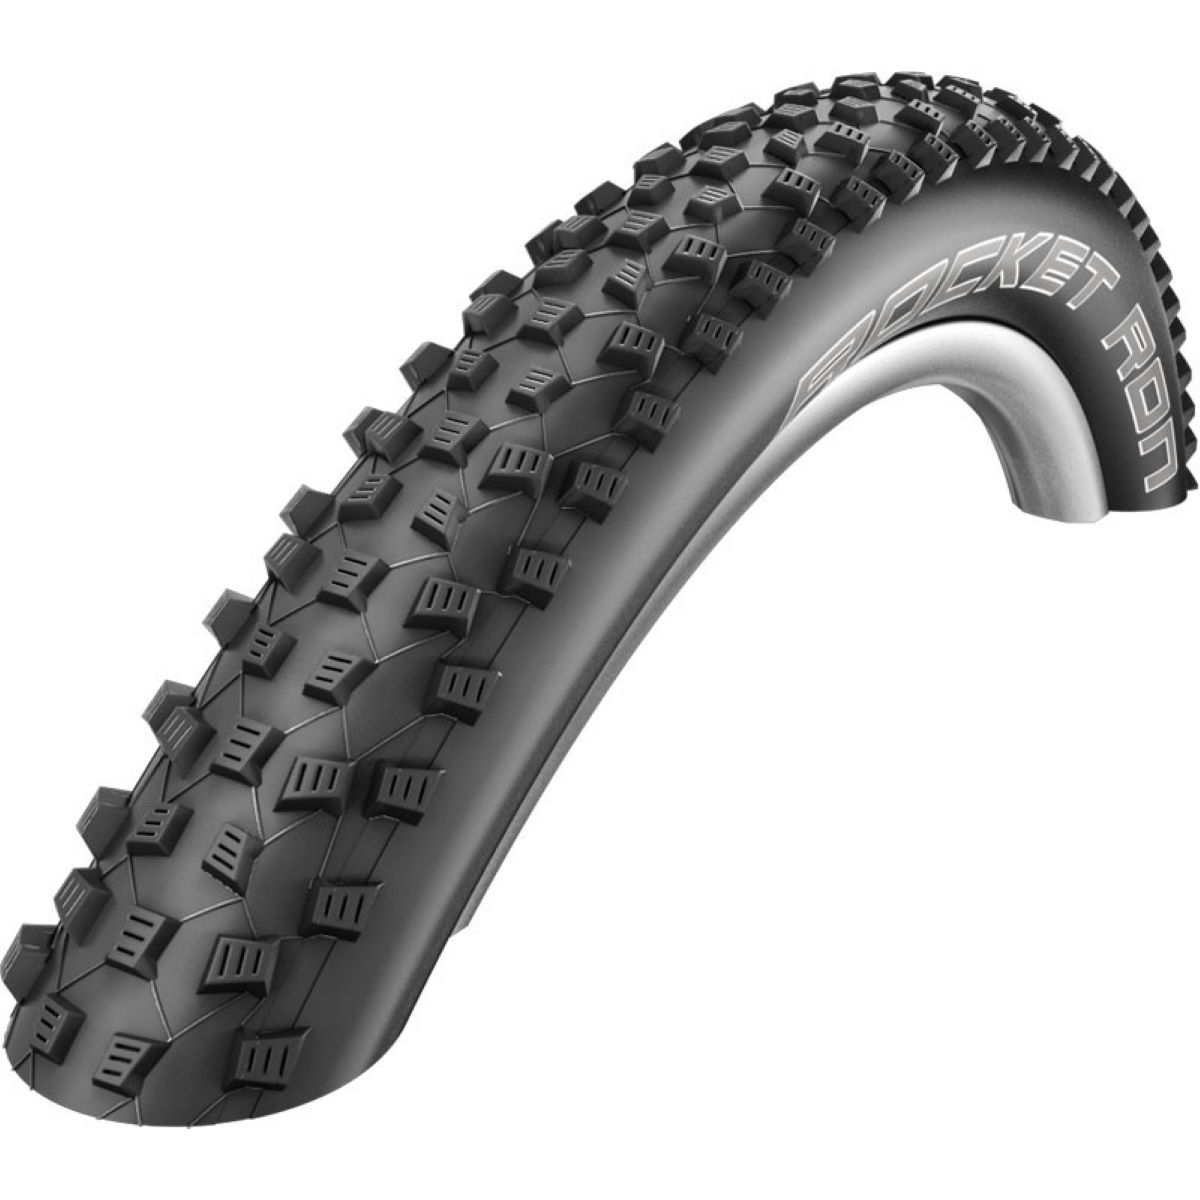 Pneu VTT Schwalbe Rocket Ron Performance Dual Compound - 26 x 2.1 Noir Pneus VTT